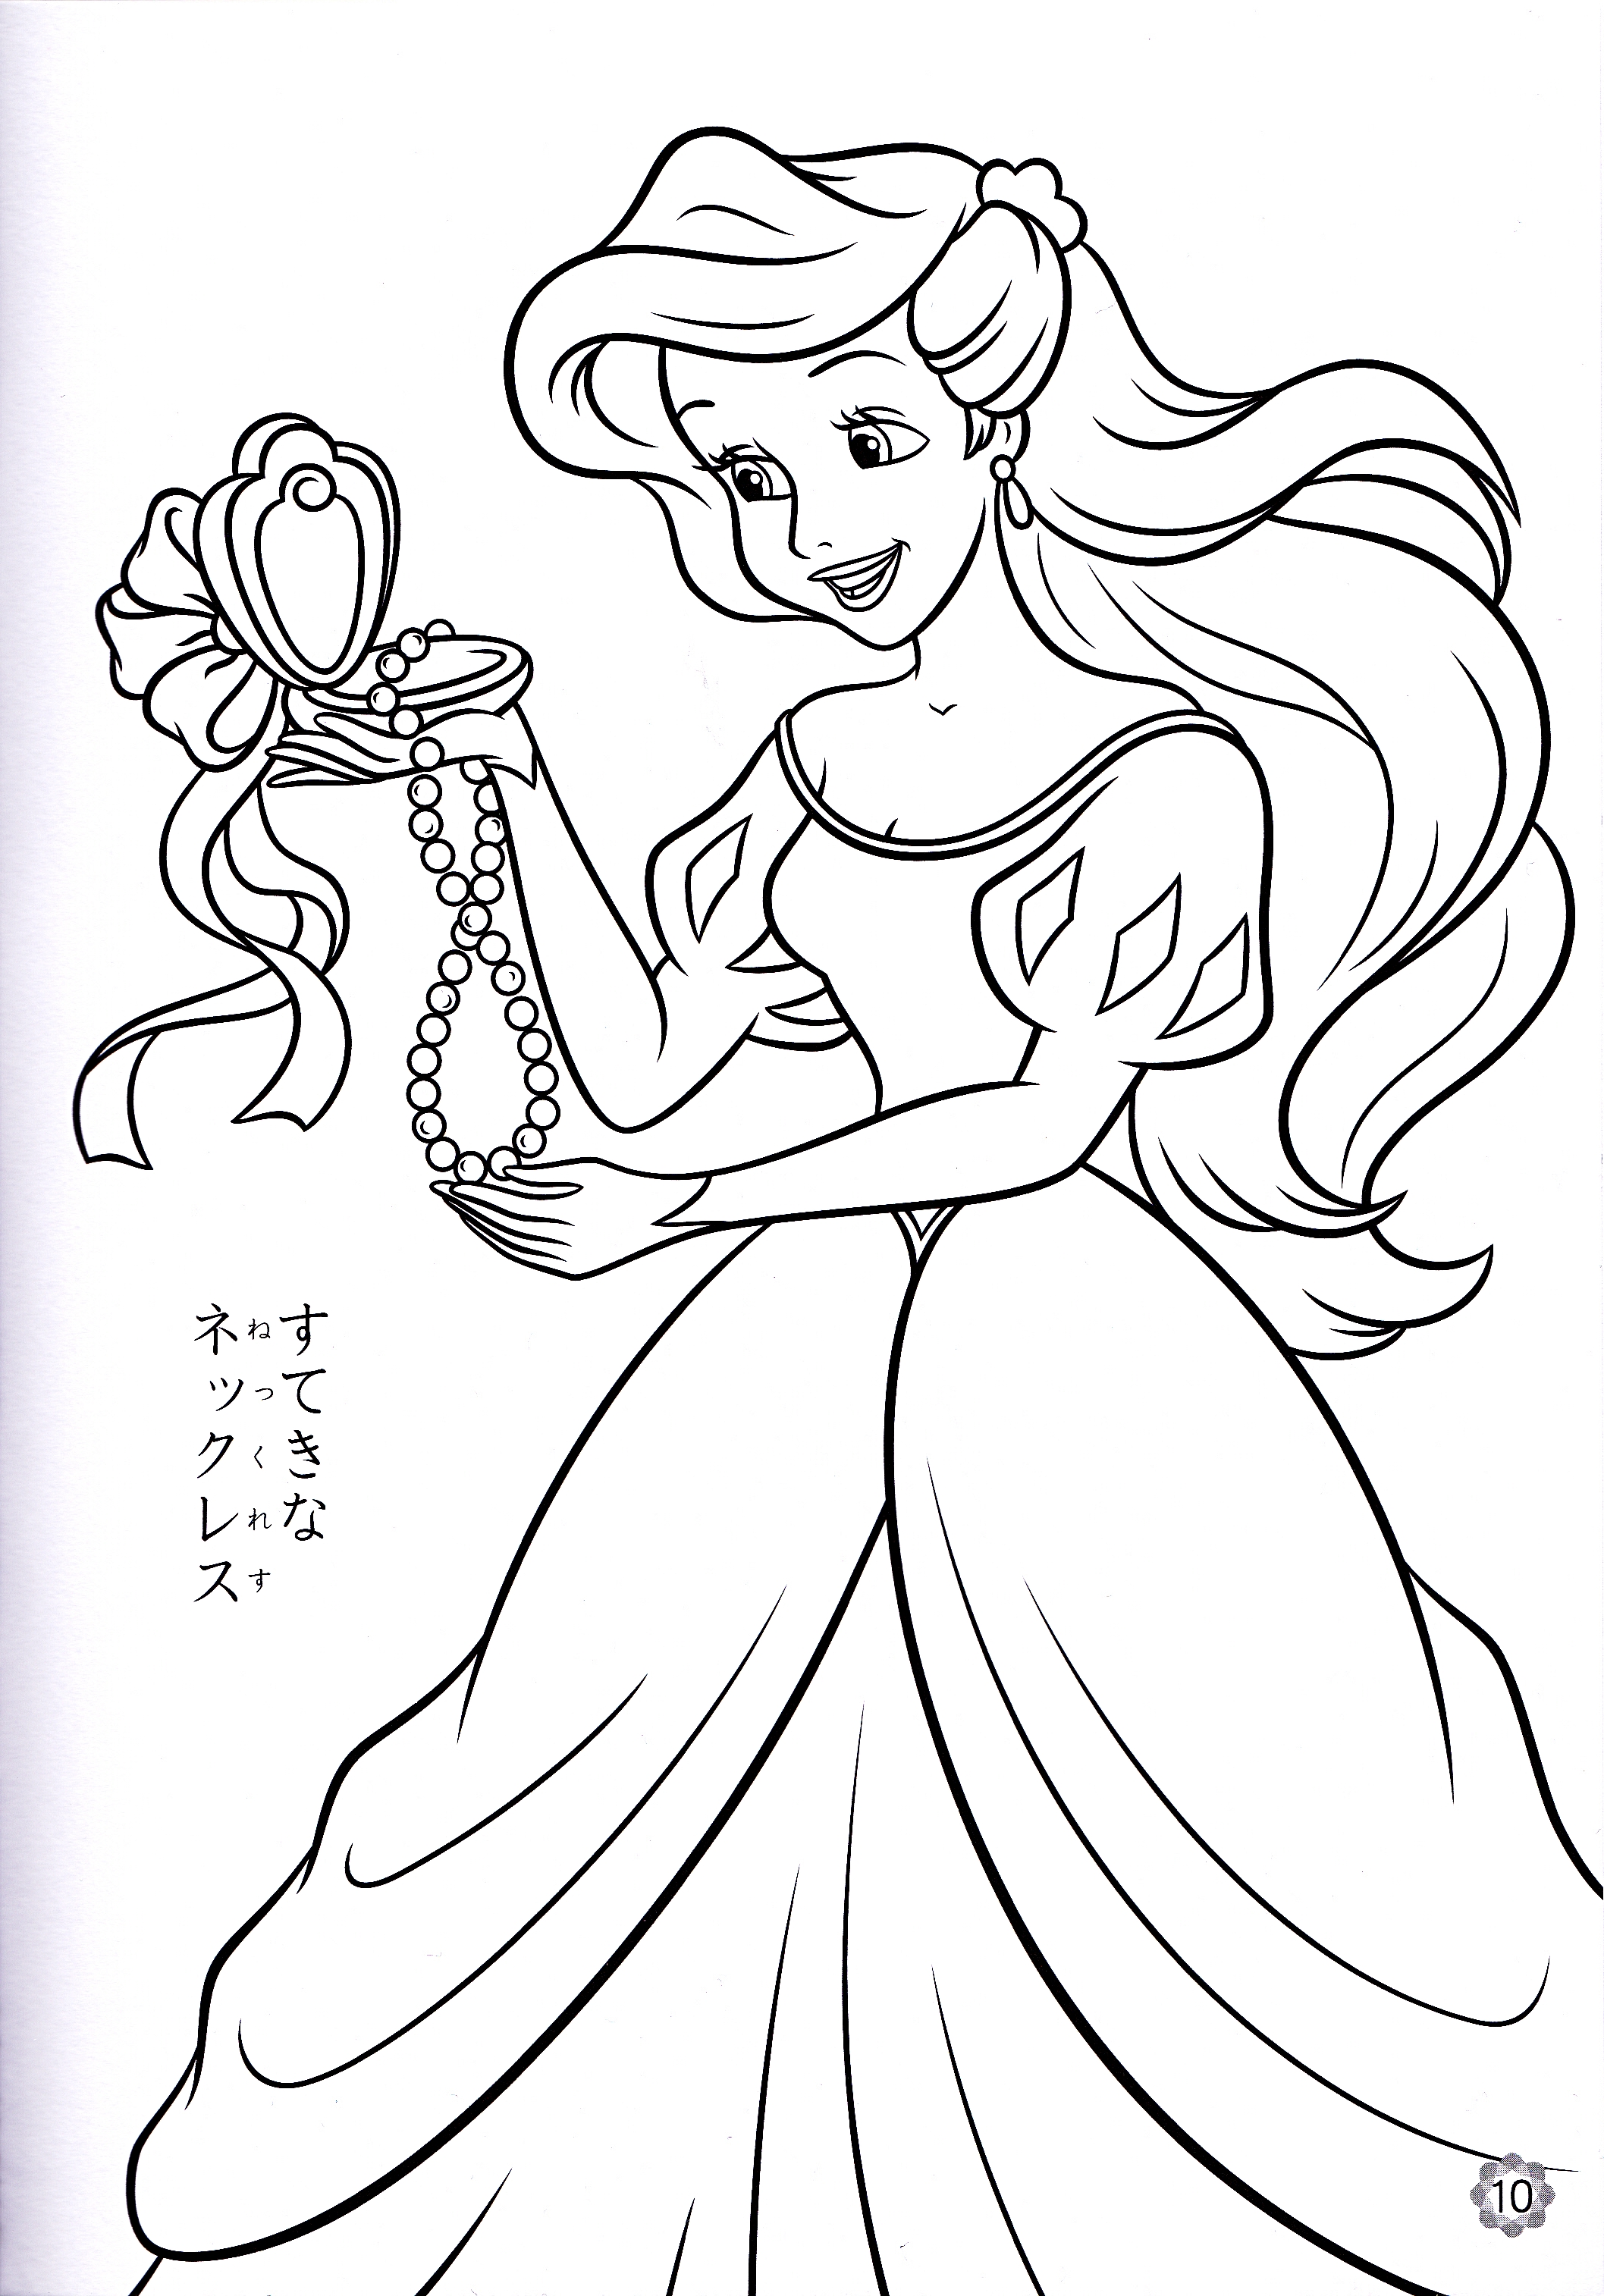 Walt Disney Coloring Pages Princess Ariel Walt Disney Disney Princess Coloring Pages For Free Coloring Sheets